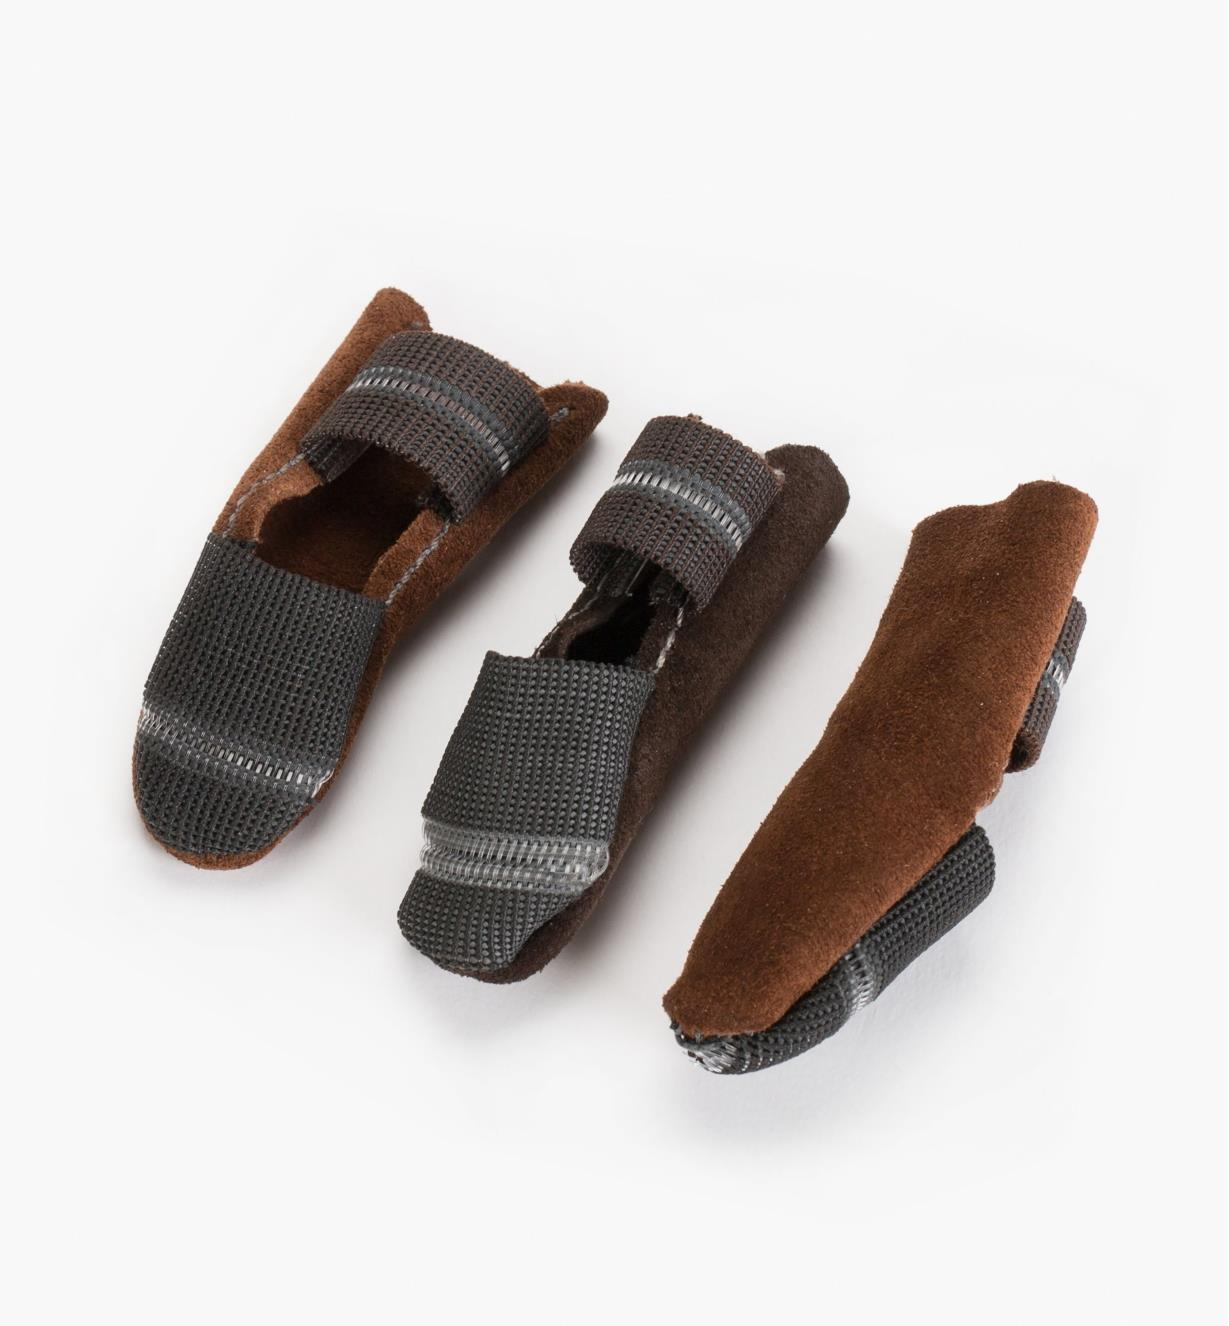 33K9112-set-of-3-leather-thumb-finger-guards-large-f-01-r-1